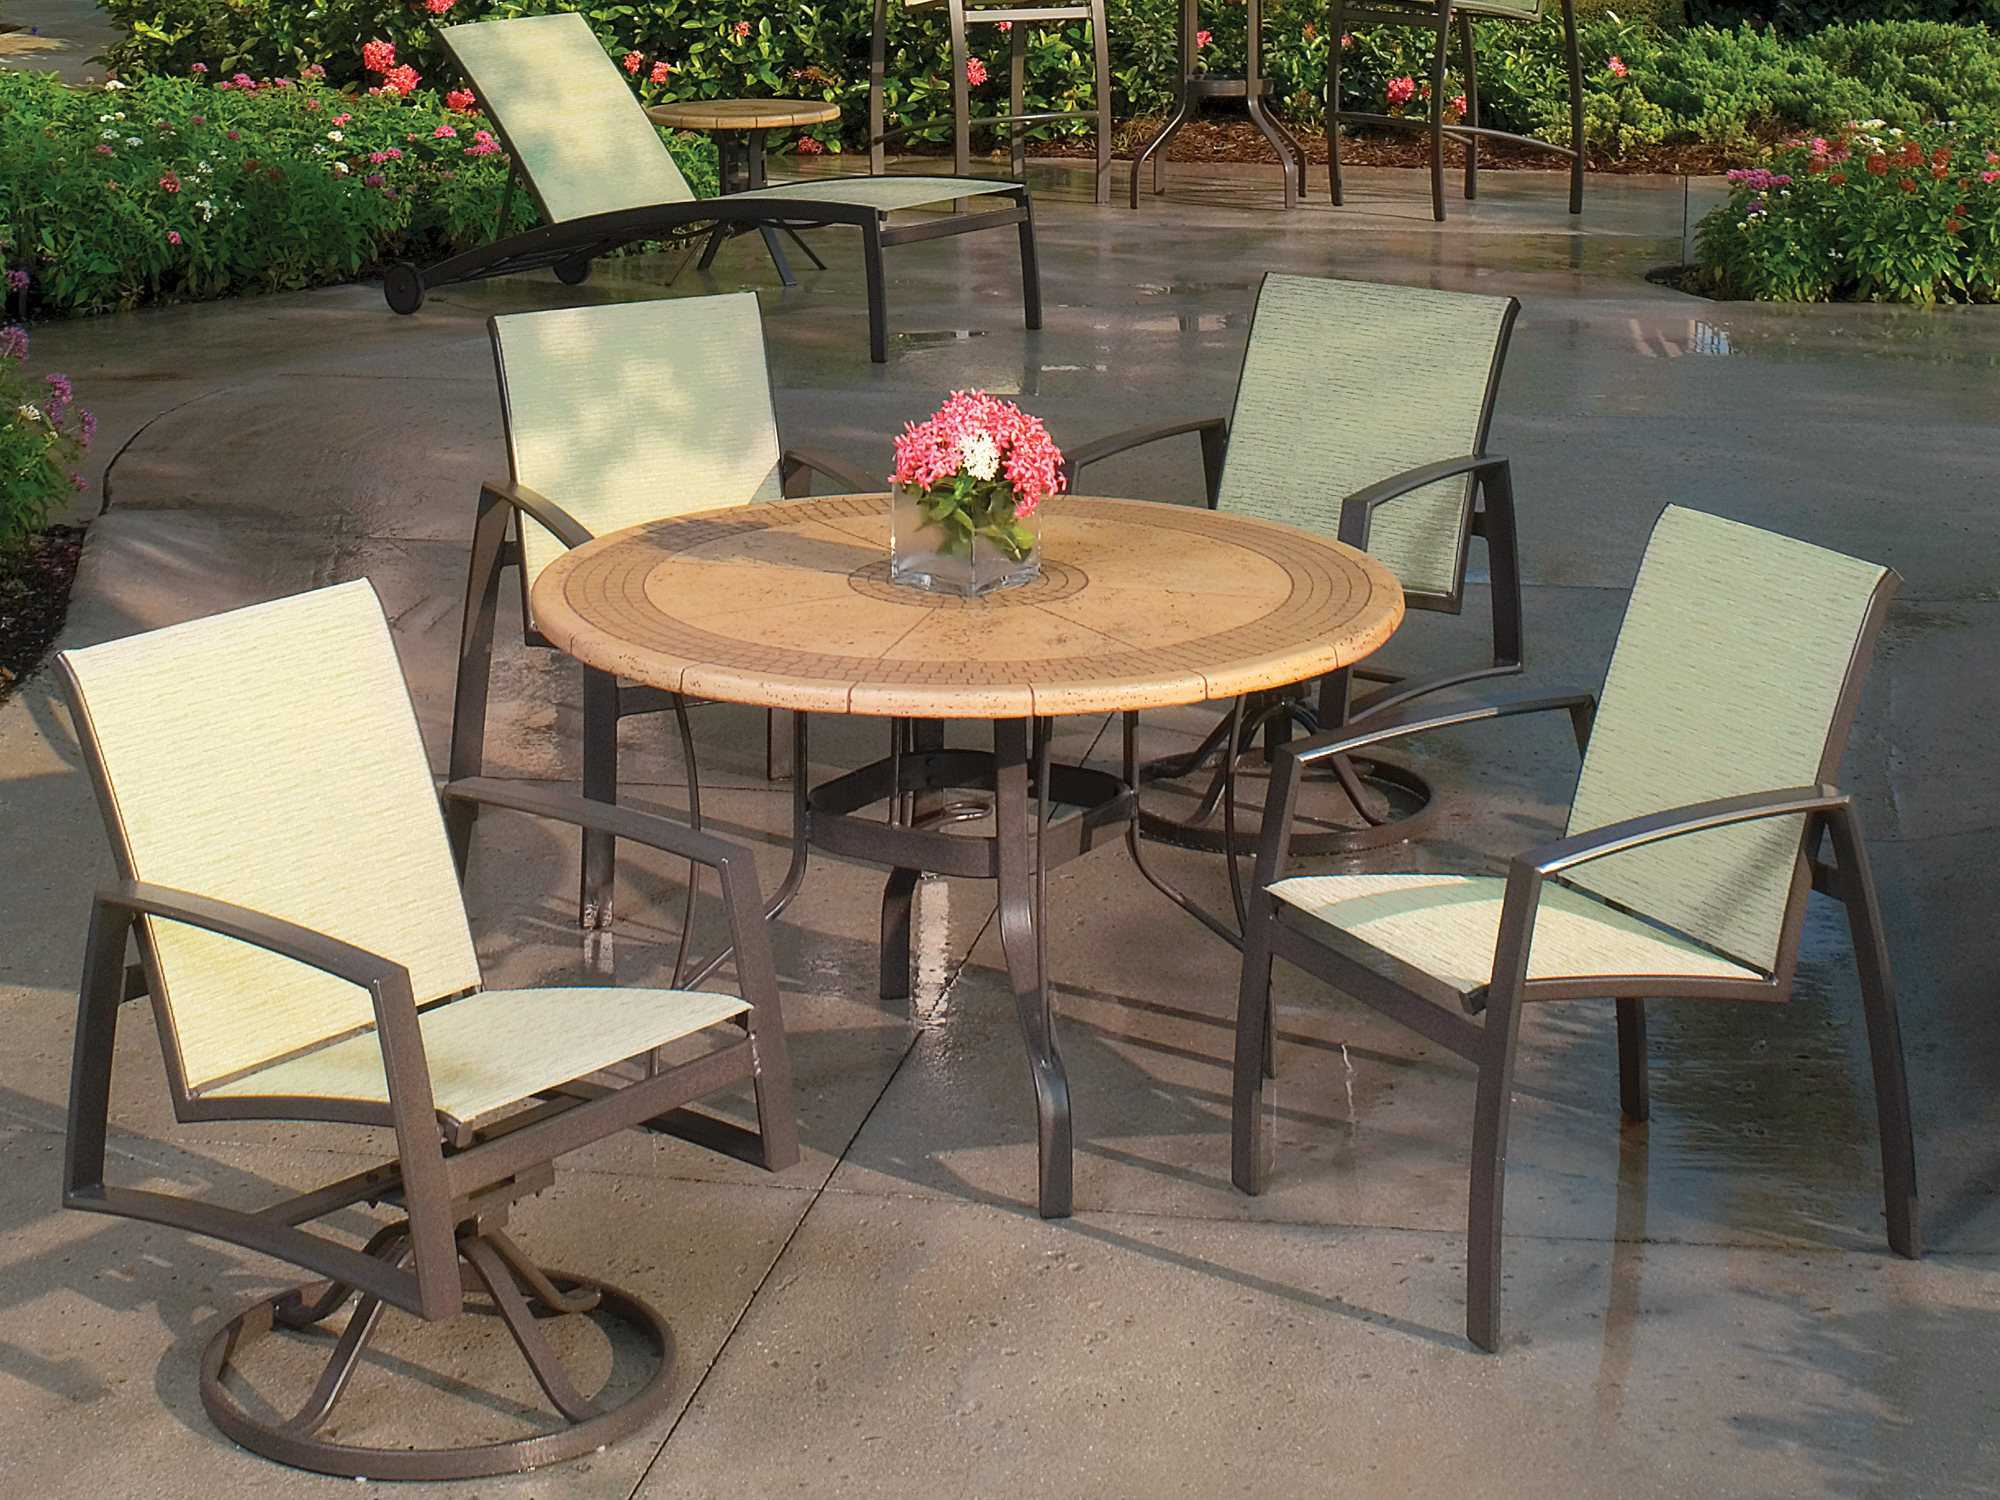 Suncoast Cortez Natural Stone 48 Round Dining Table TOPS  : SUVSDSzm from www.patiocontract.com size 2000 x 1500 jpeg 300kB